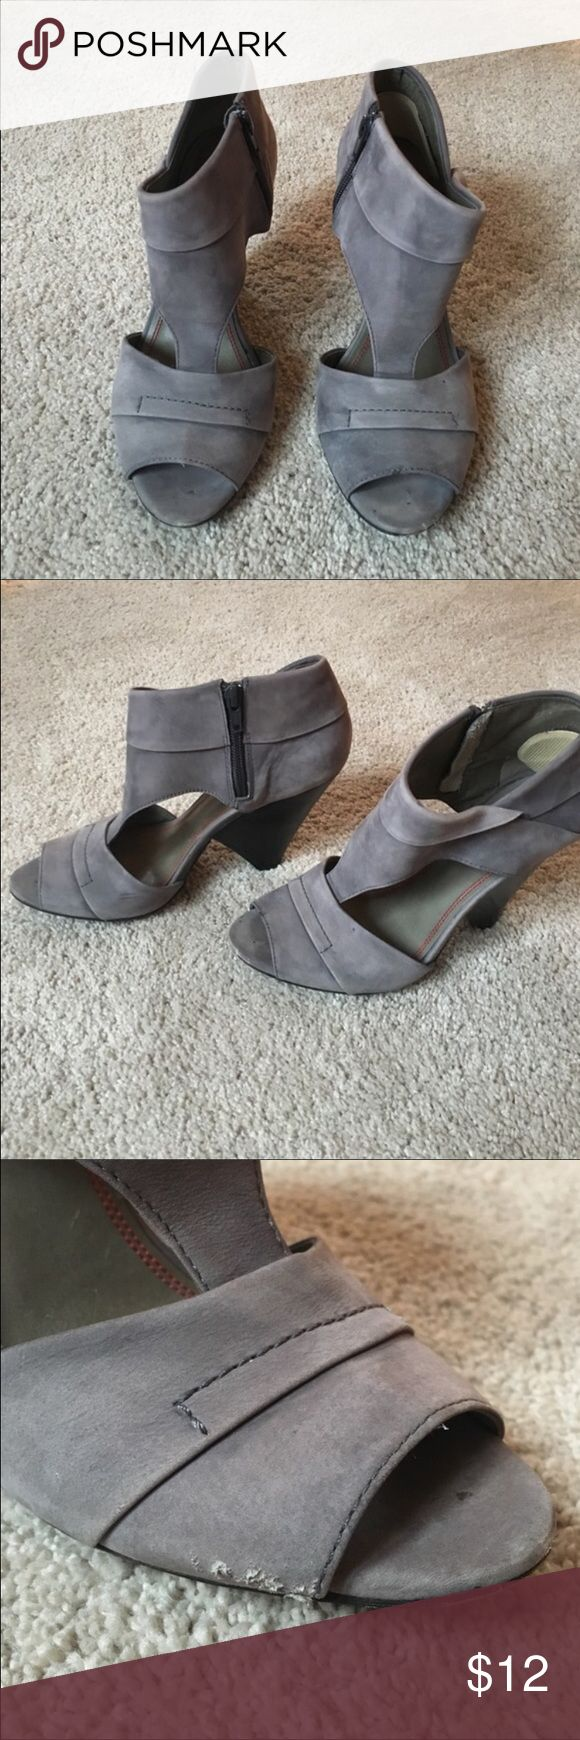 Miss Sixty Gray Heels, in good condition!!.. Miss Sixty Grey Heels, in good condition with unique triangle heels!!..Just 2 small lil marks as seen in 2nd and 3rd pictures, barely seen when worn!..Super Super Cute on!... and remember I excepting all reasonable offers and bundles!!... Miss Sixty Shoes